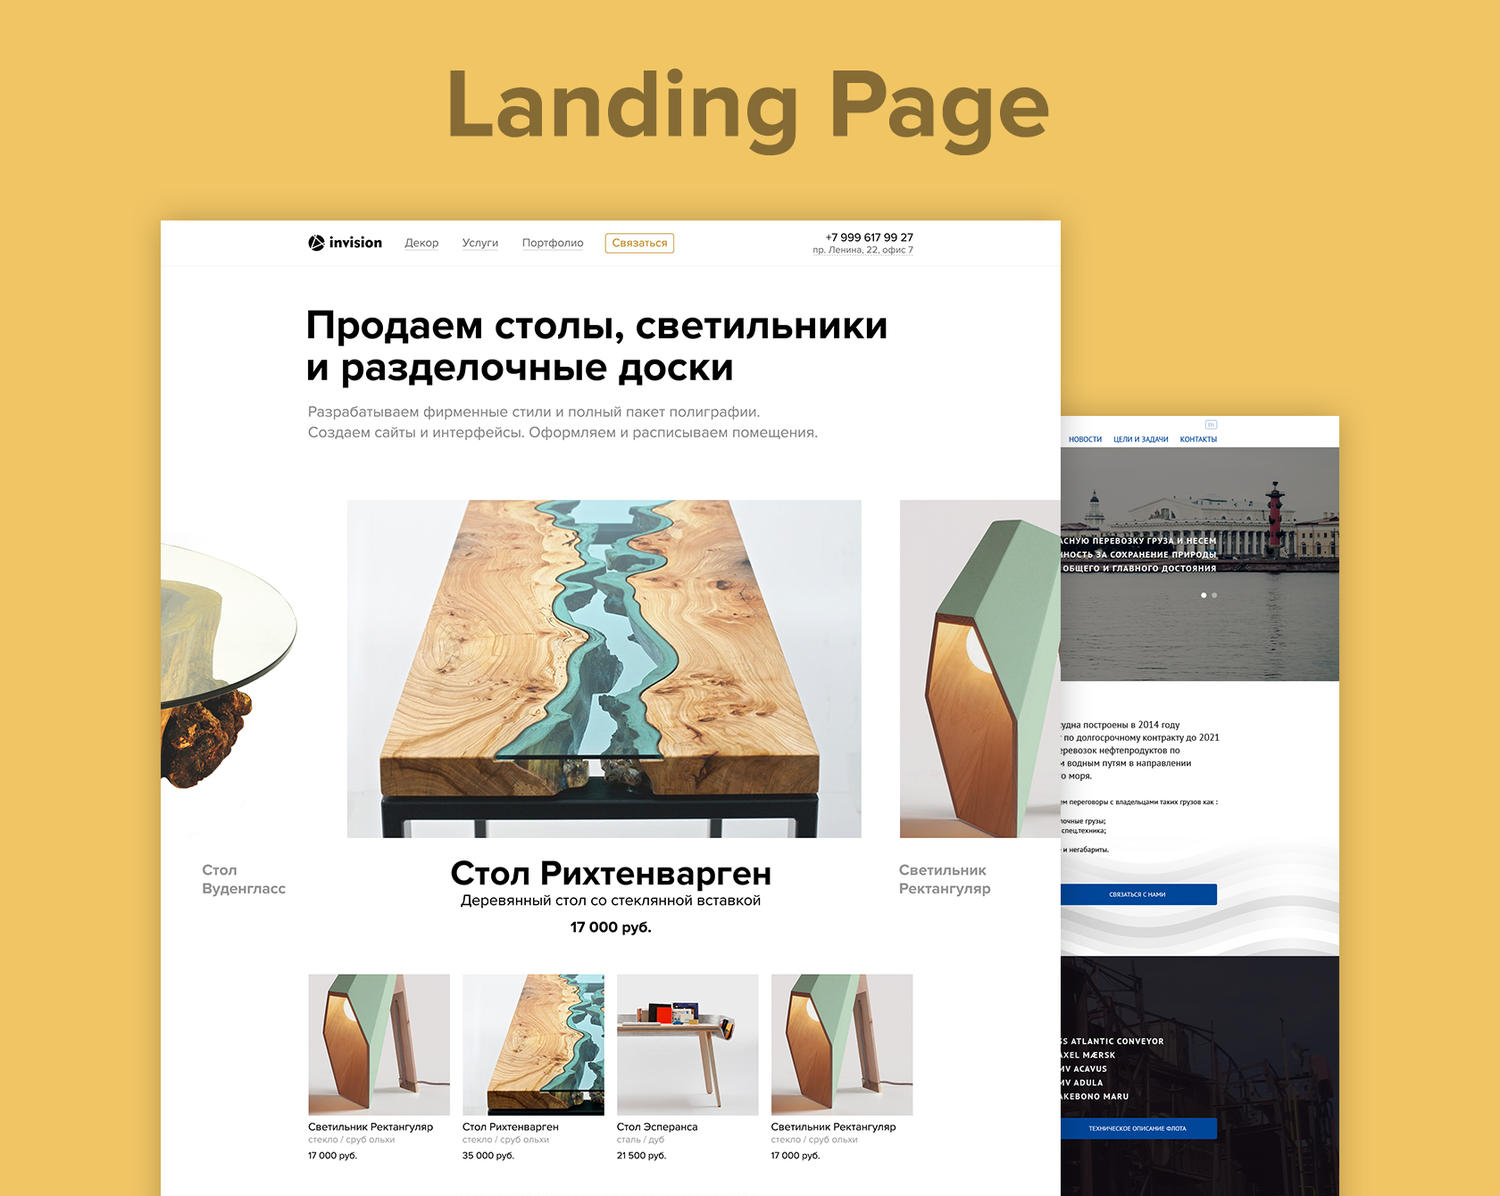 Professional Single Landing Page Design by oxyberg - 104293